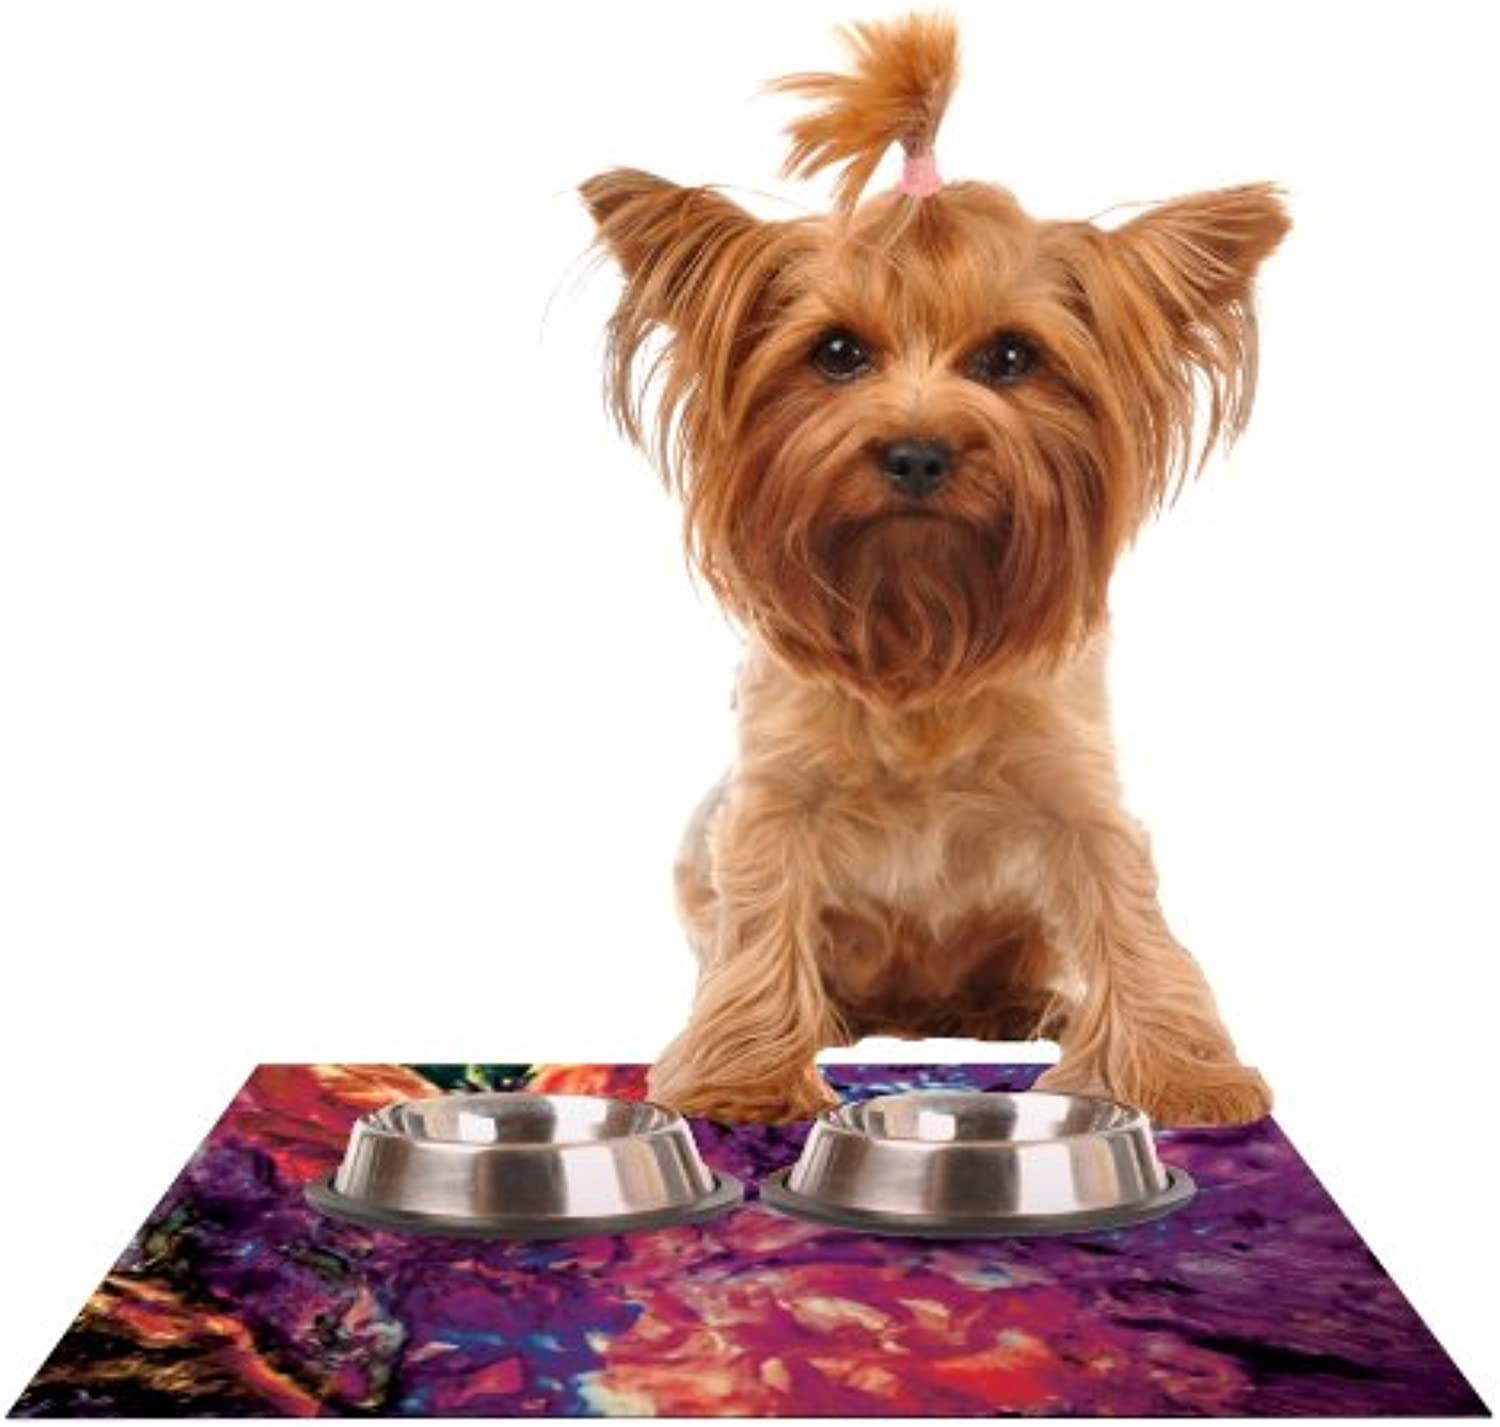 KESS InHouse Mary Bateman Passion Flowers II  Feeding Mat for Pet Bowl, 18 by 13Inch